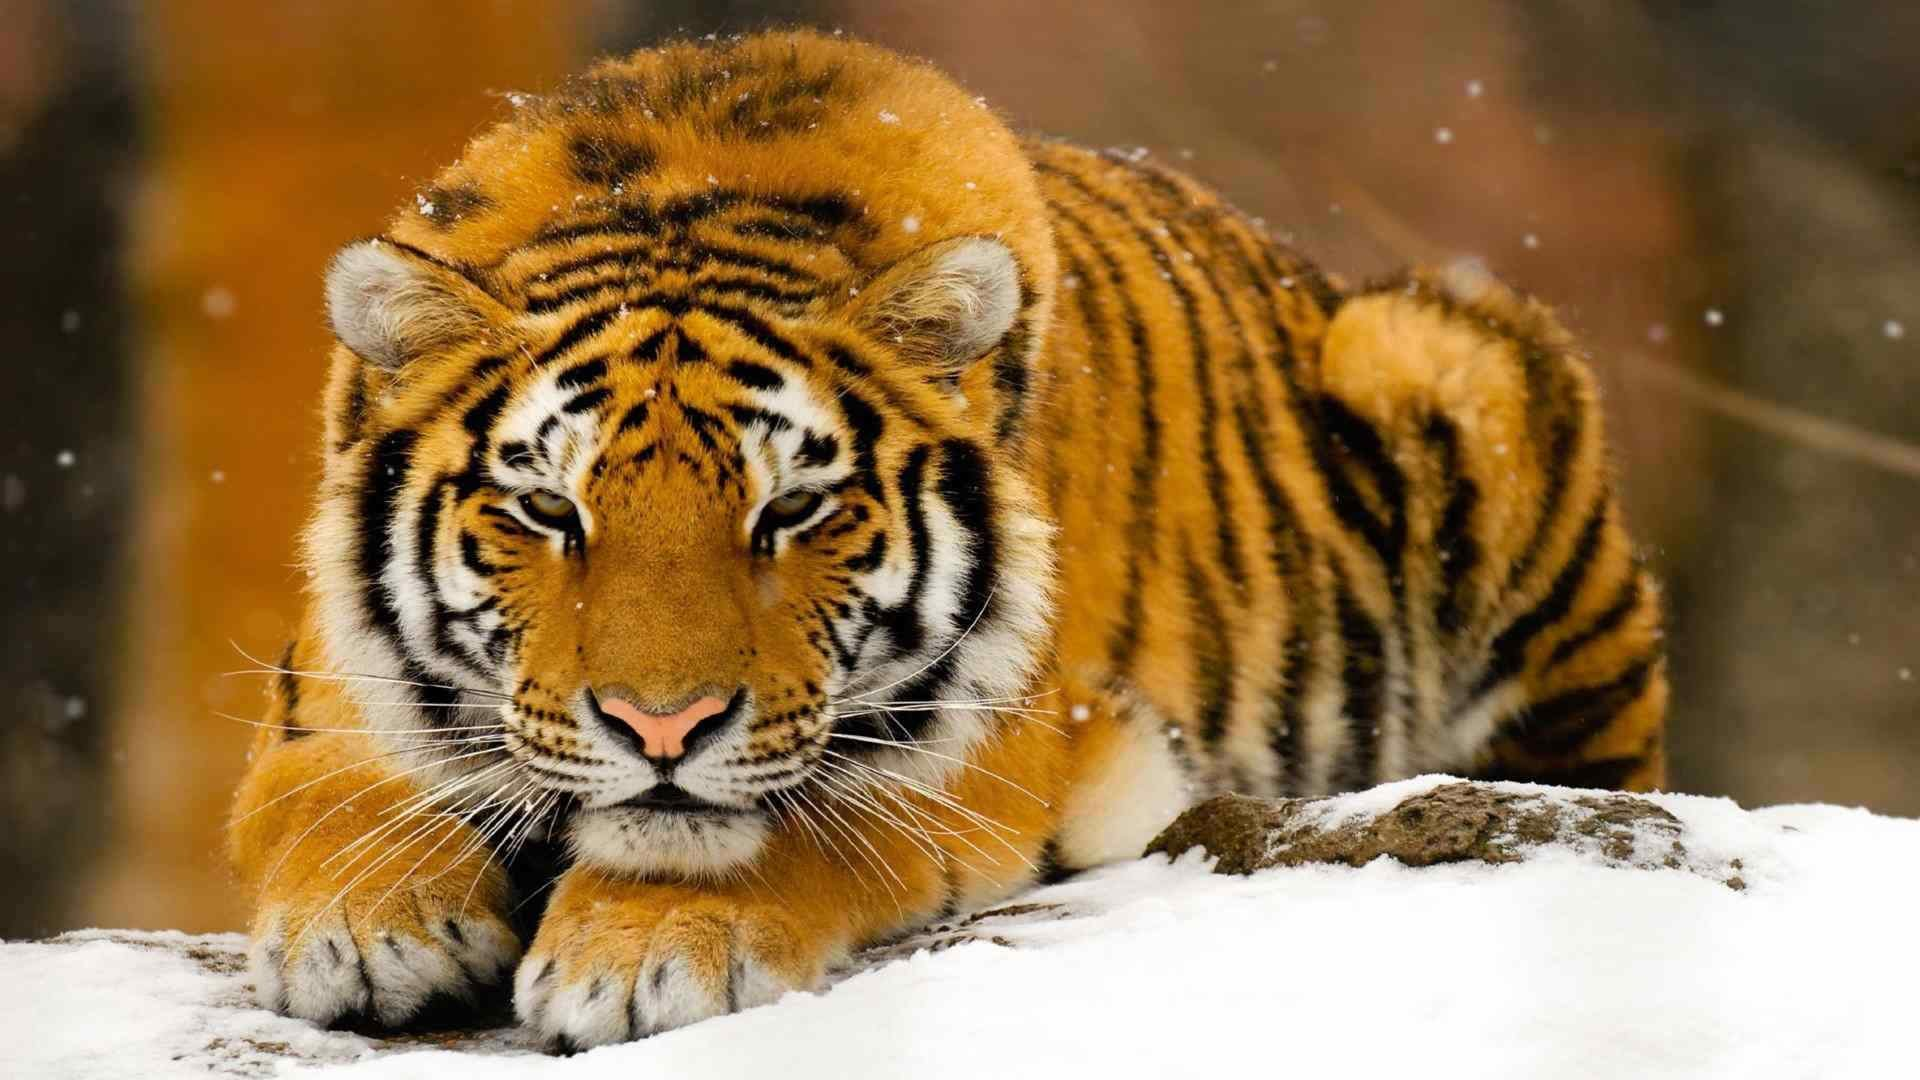 Awesome Tiger free wallpaper ID:116507 for 1080p PC